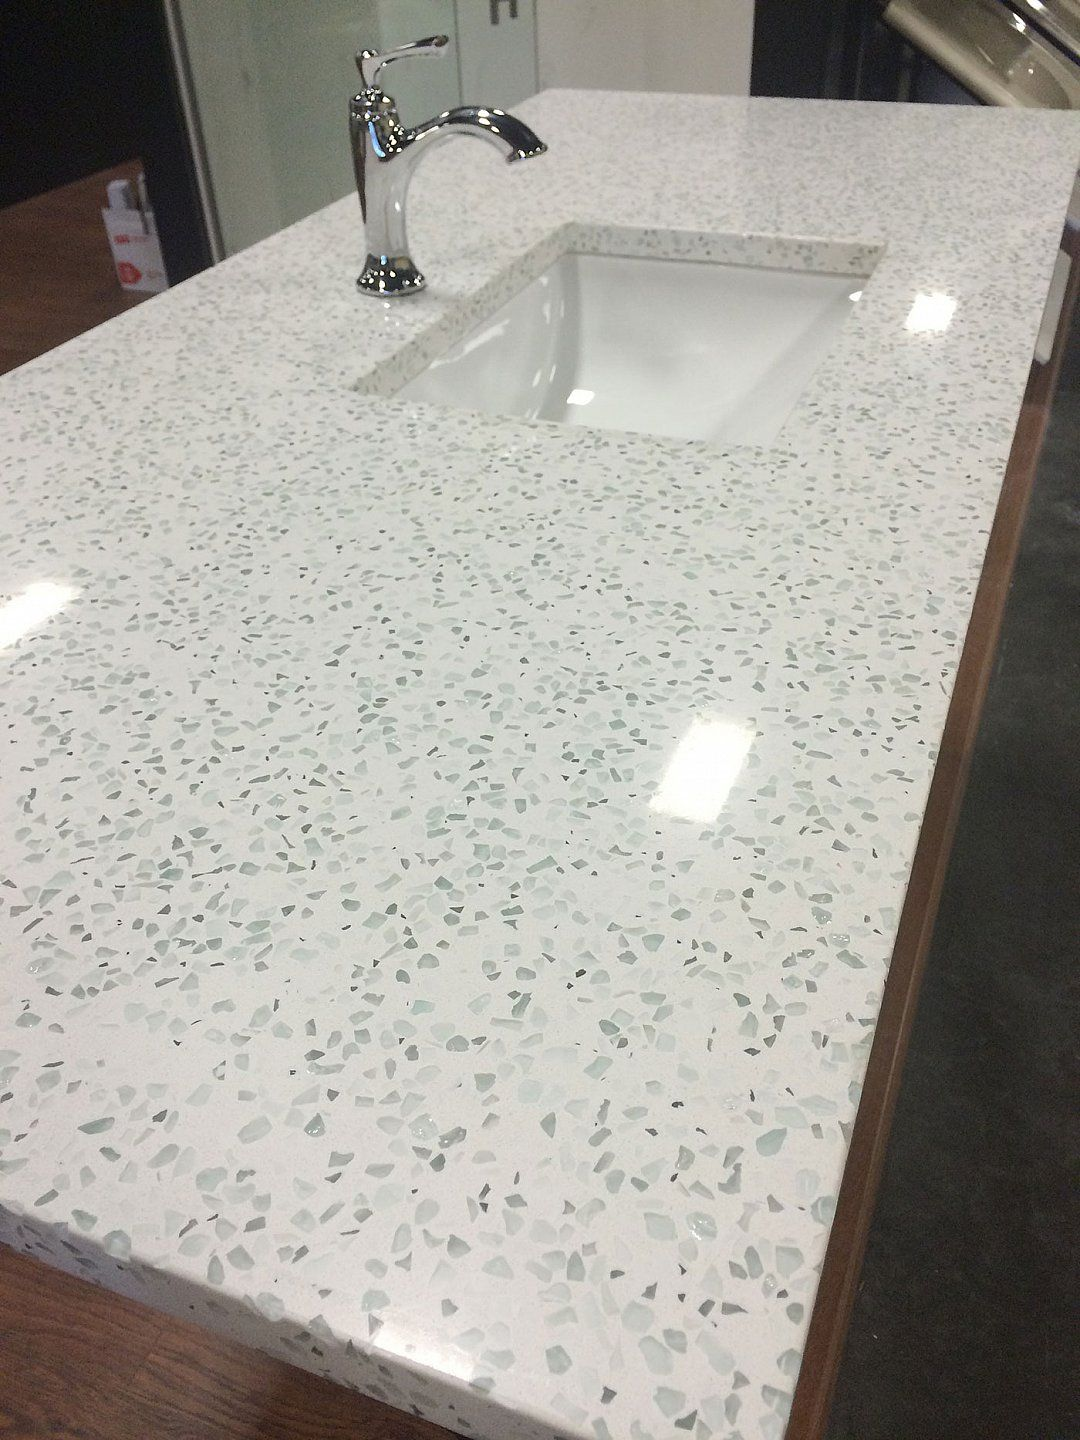 Recycled Countertops I Am Intrigued By Recycled Glass Countertops They Are A Bit